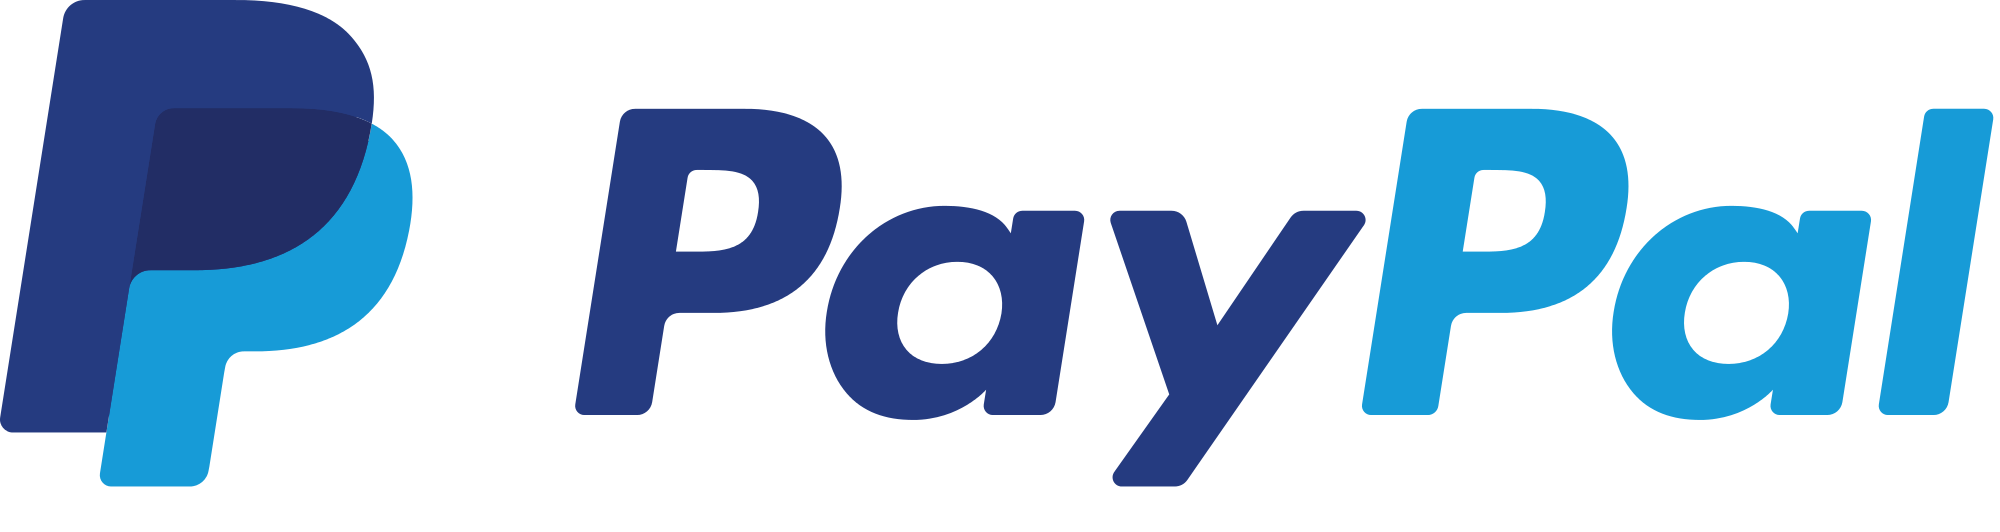 PayPal supporto 1 1